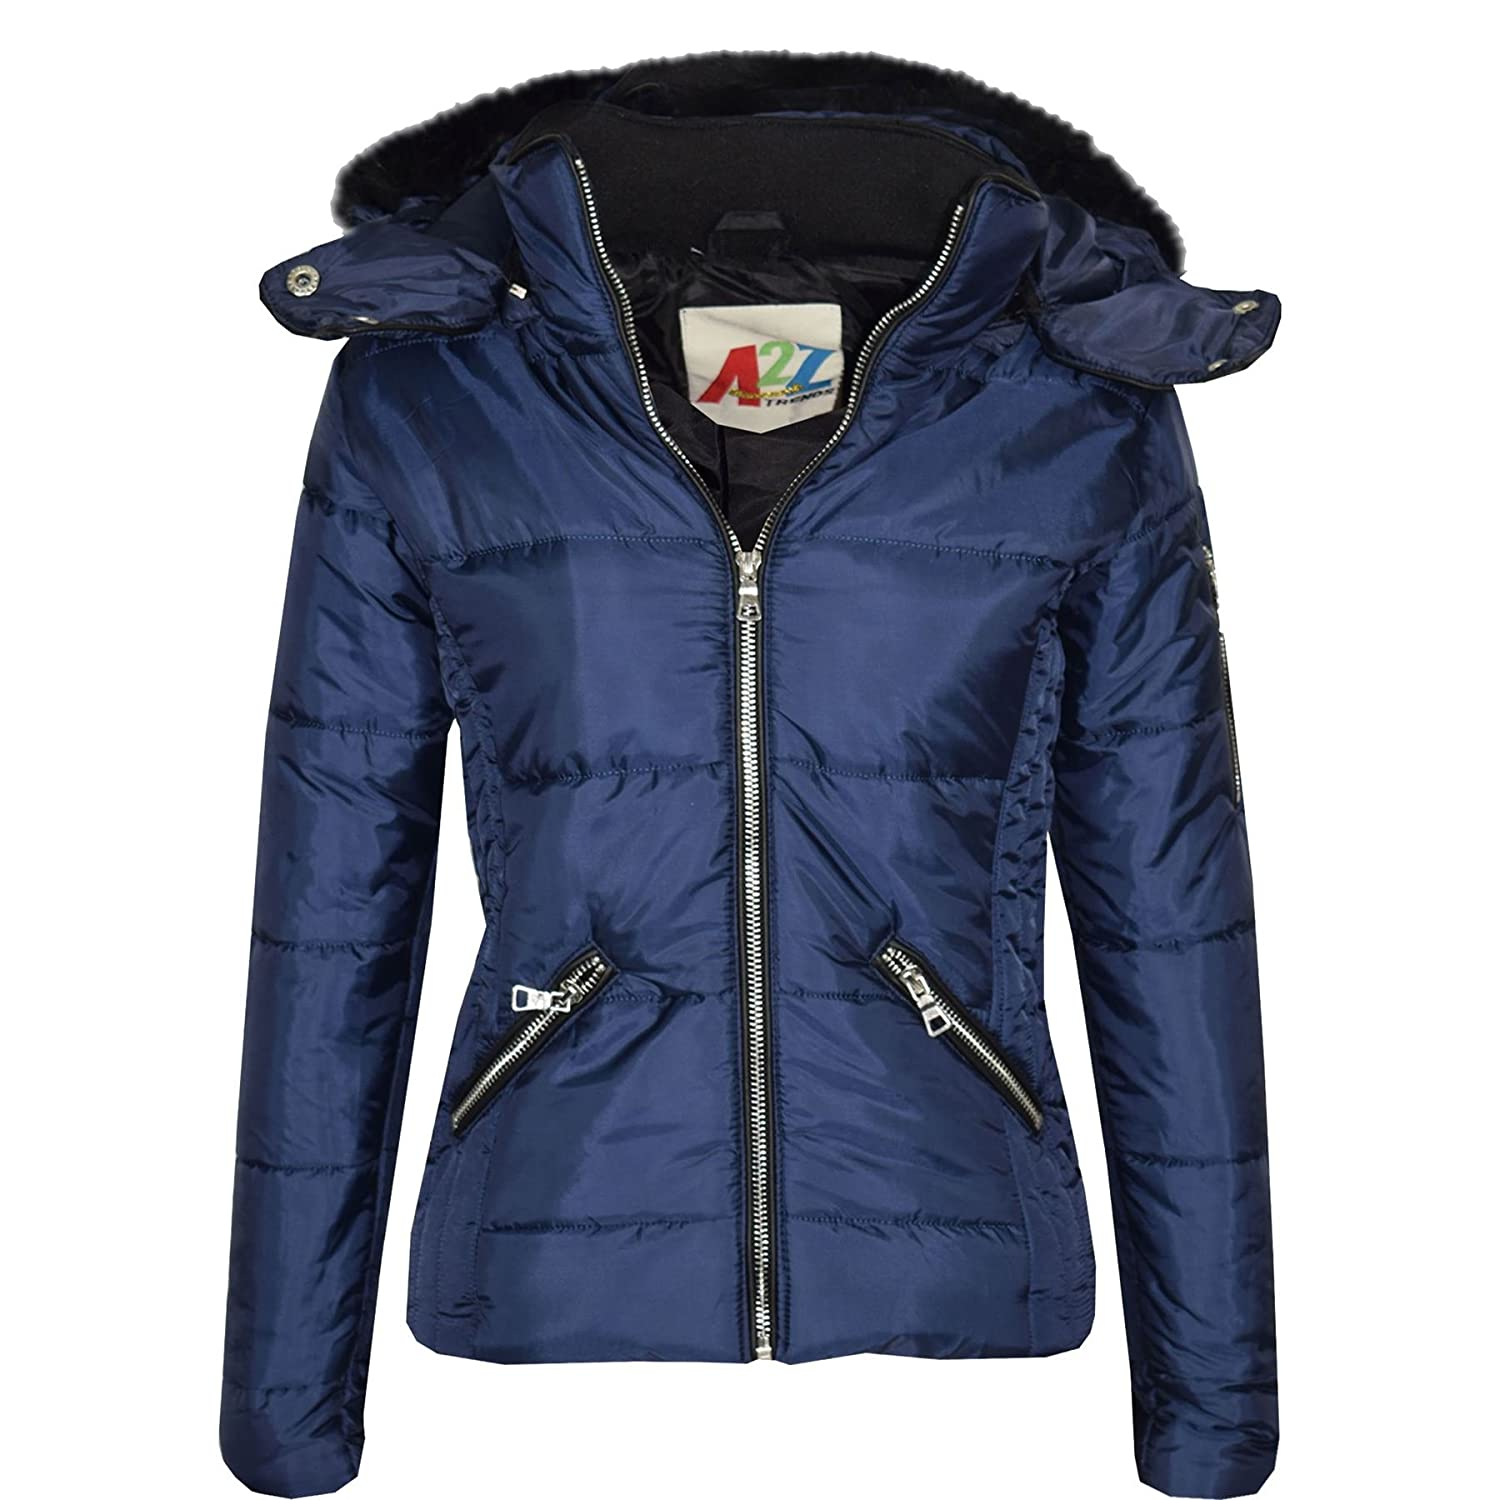 A2Z 4 Kids® Girls Jacket Kids Navy Stylish Cropped Padded Puffer Bubble Fur Collar Quilted Warm Thick Coat Jackets Age 3 4 5 6 7 8 9 10 11 12 13 Years